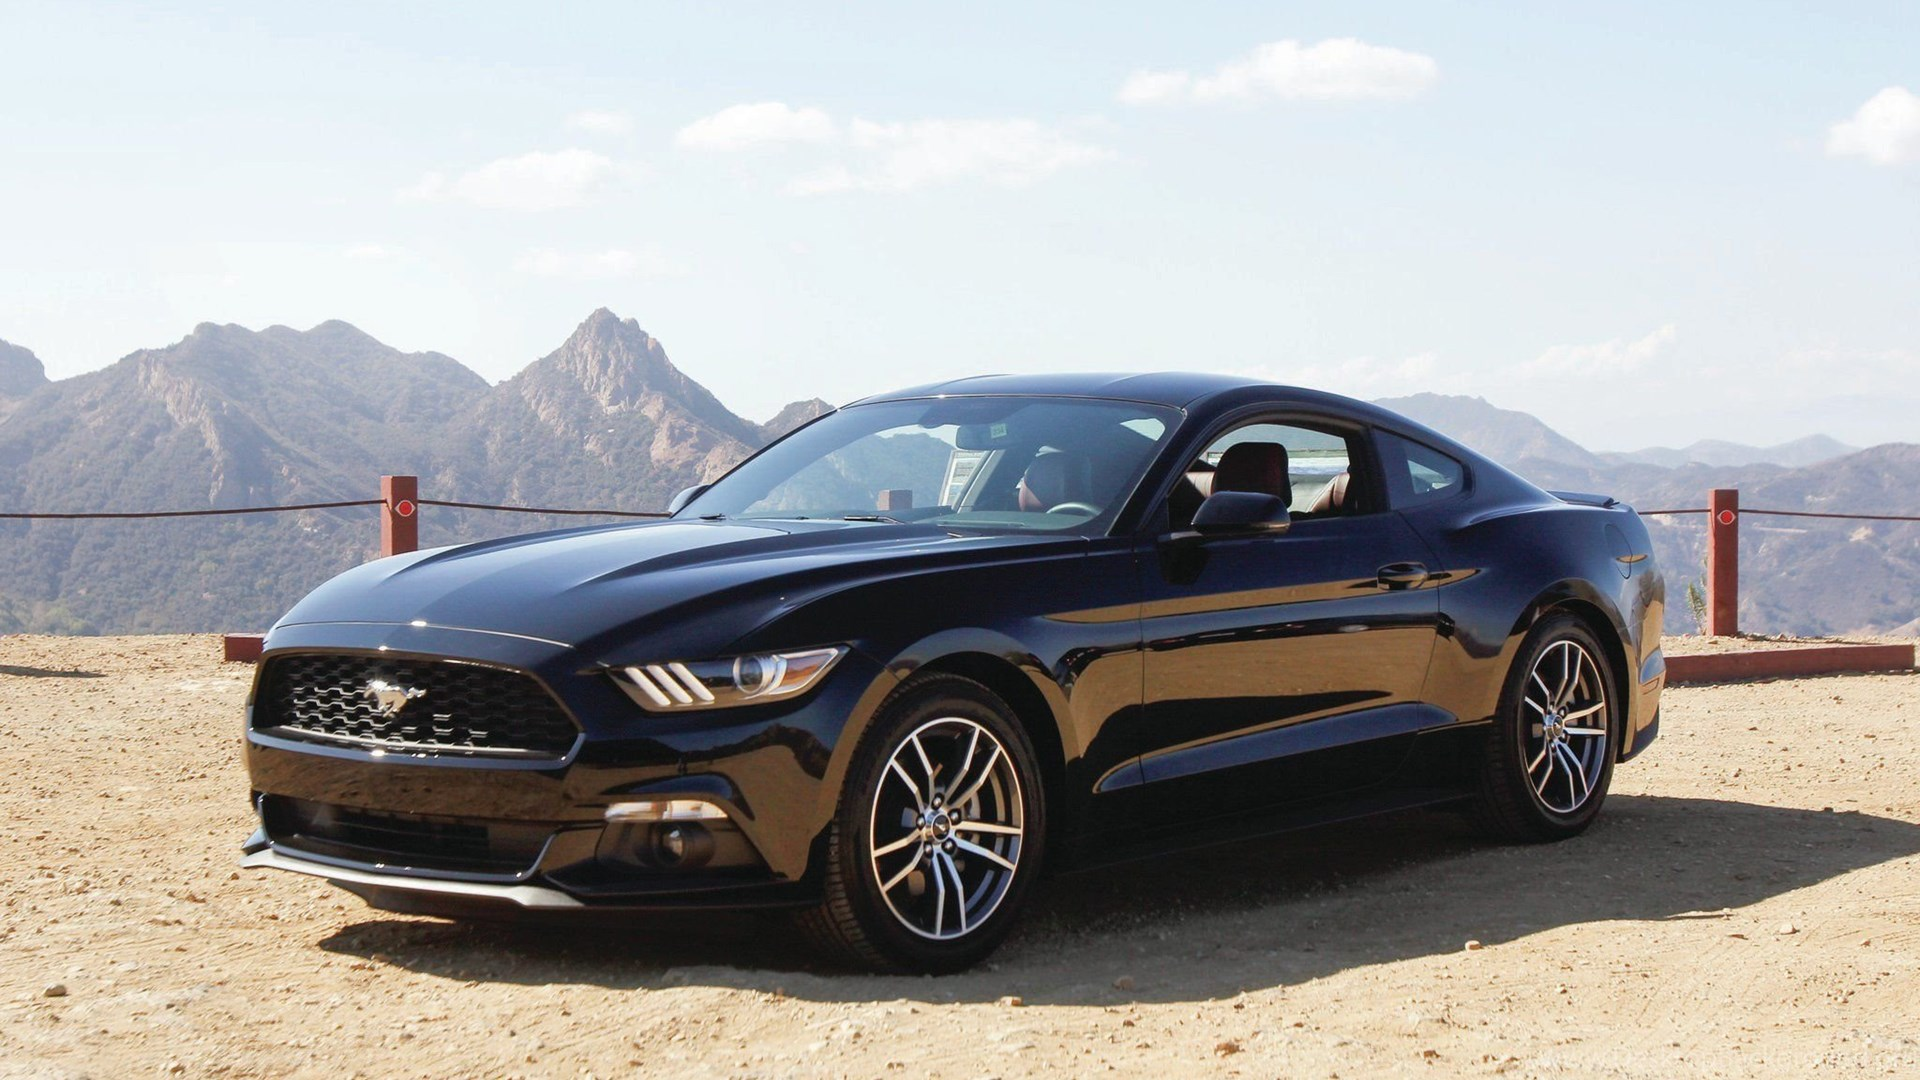 2015 Ford Mustang Black HD Desktop Backgrounds Wallpapers Attachment